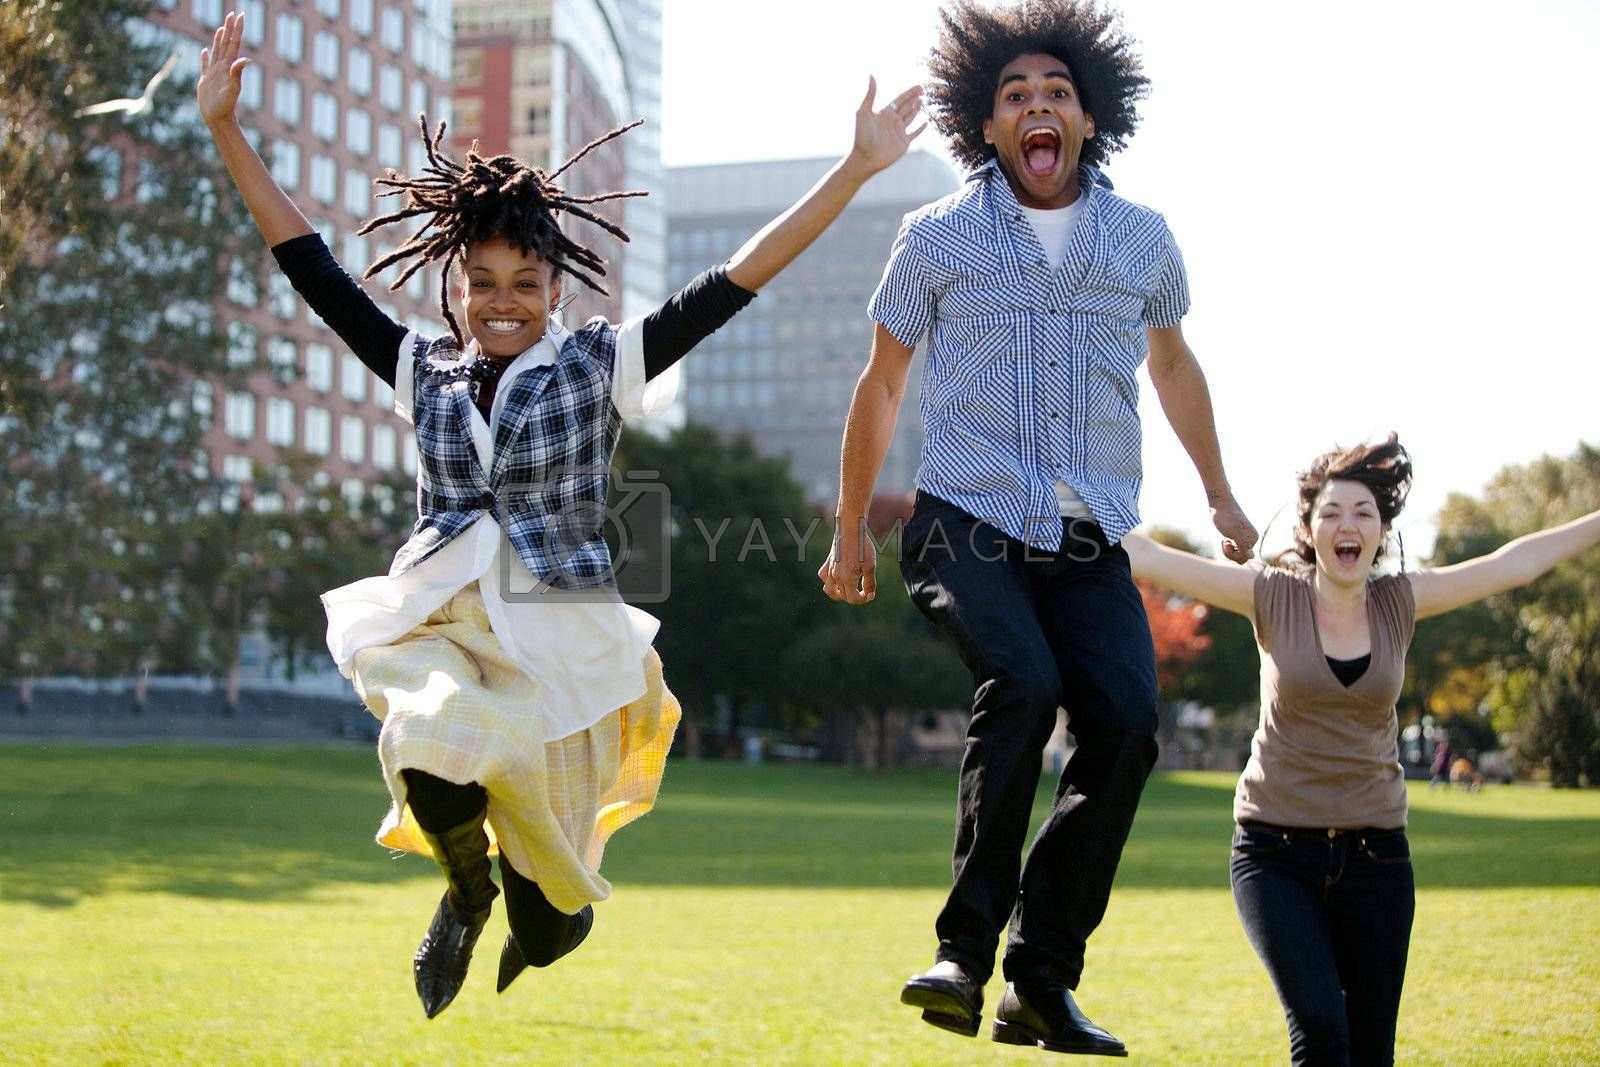 A group of people jumping for joy in a city park